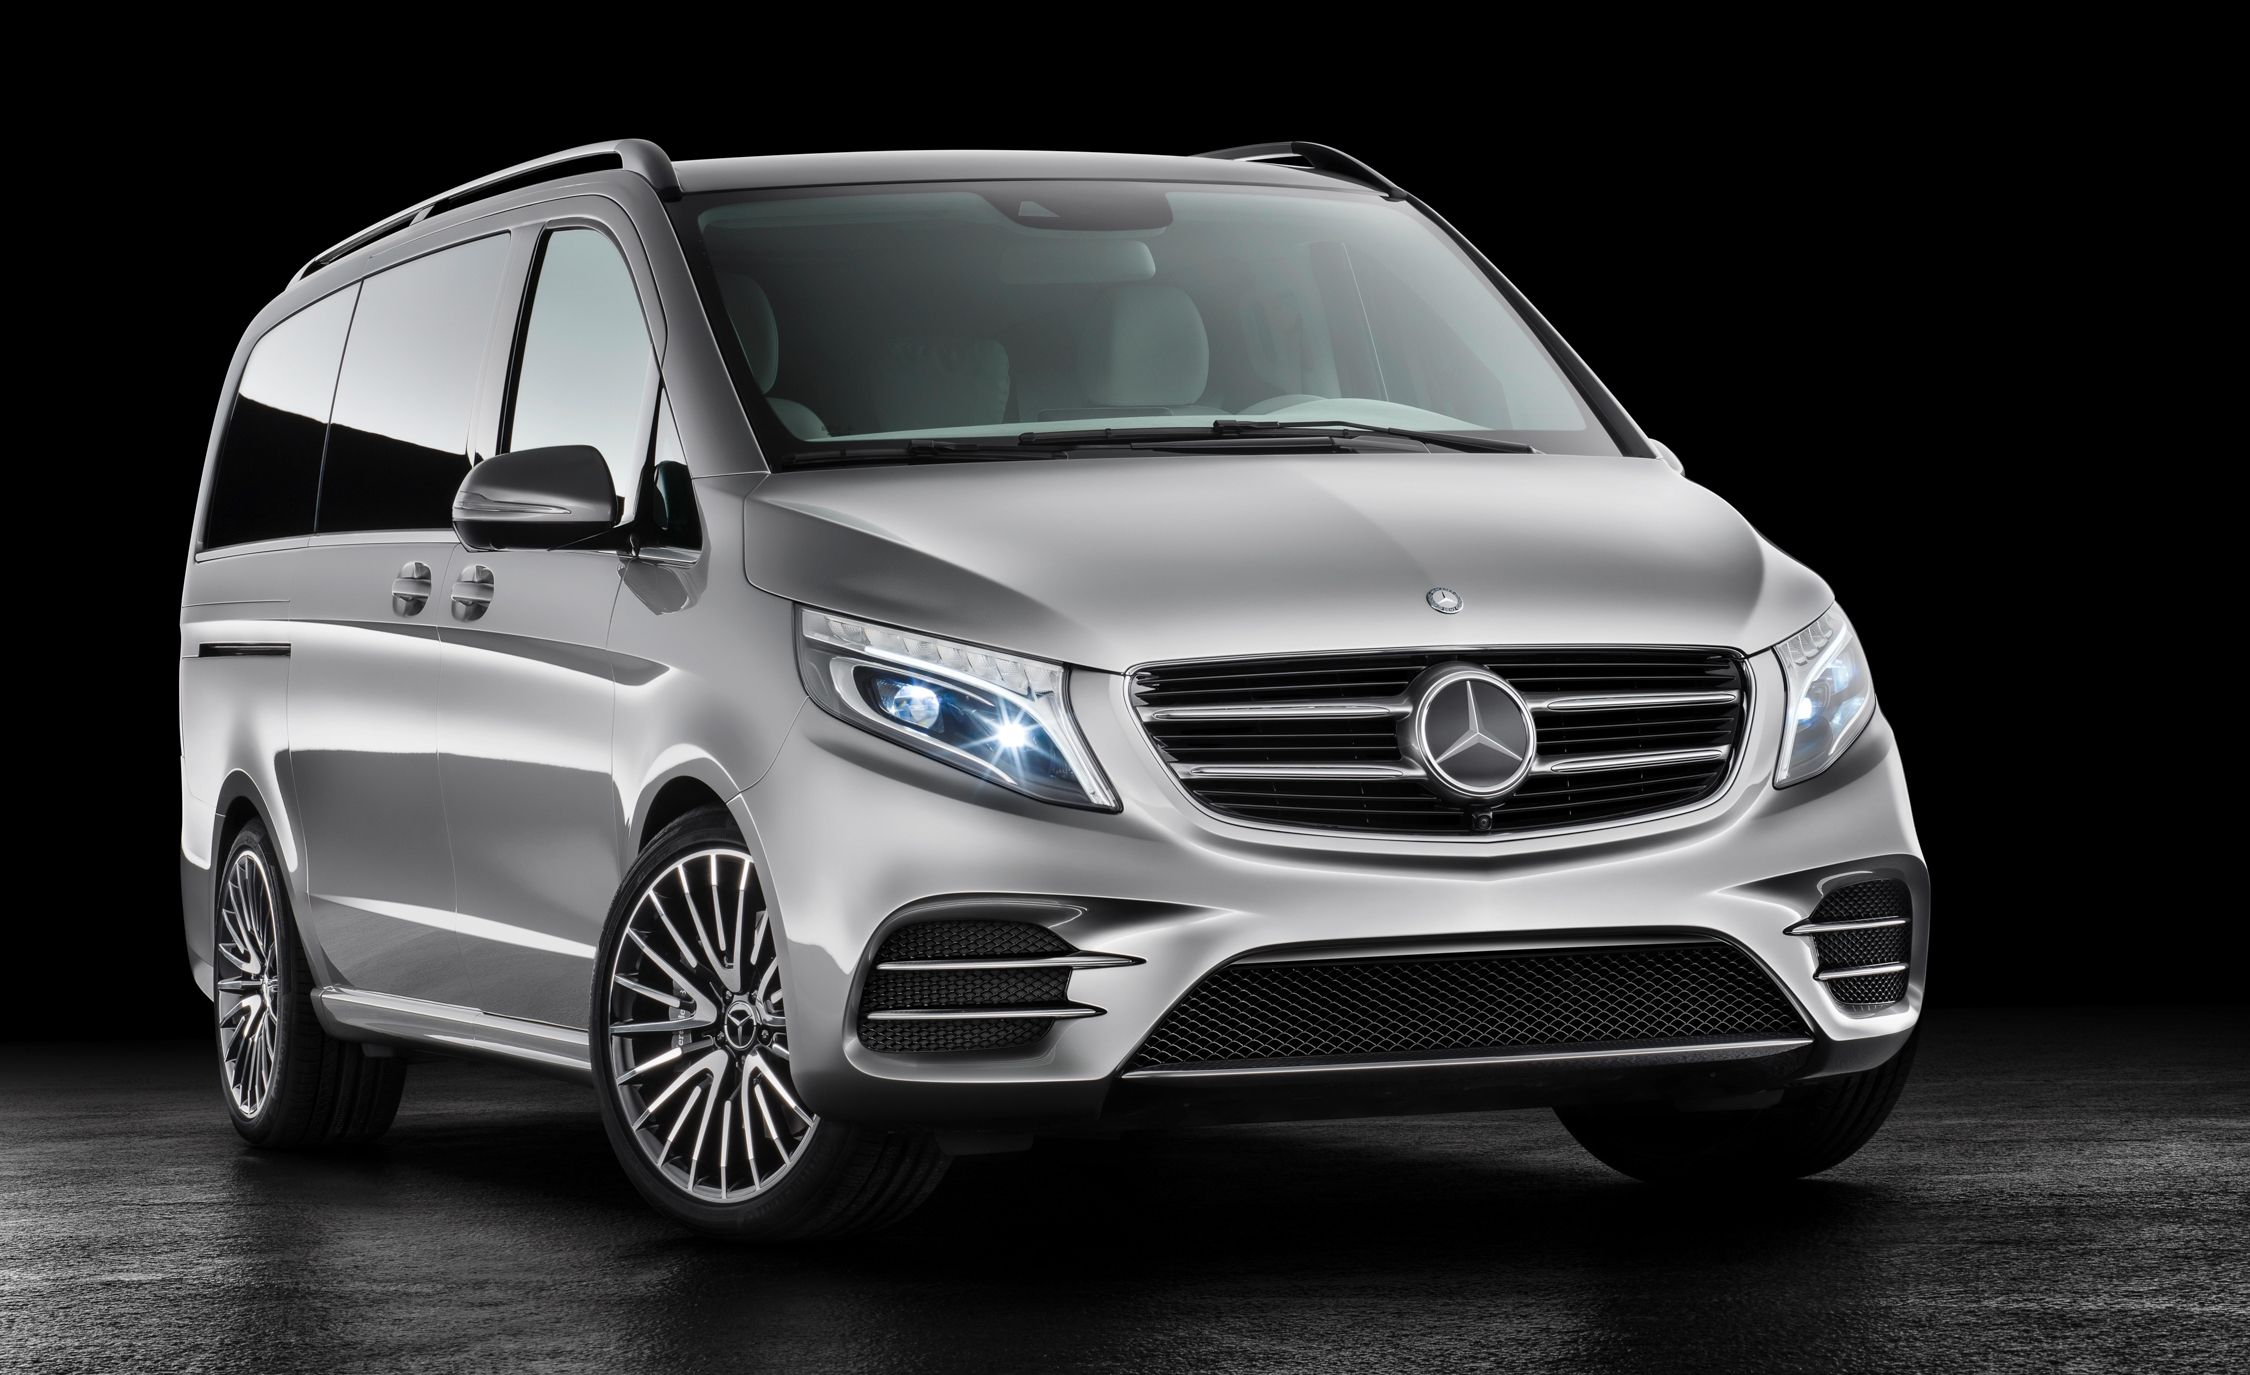 mercedes-benz v-ision e is a neat concept with a silly name – news